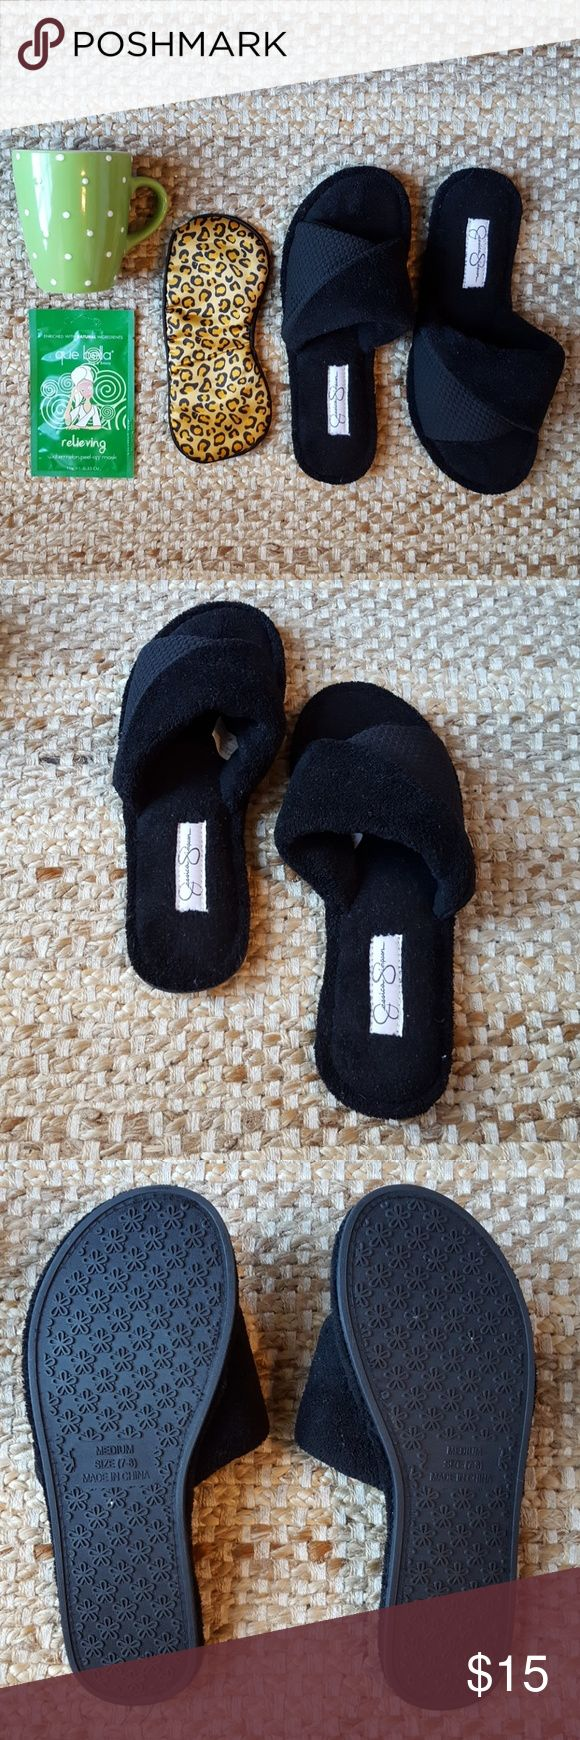 Jessica Simpson slippers Black, super soft slipper. Bought for a trip and only wore them once. Size medium. 7/8 I'm a 7 and they fit just fine. EUC! Jessica Simpson Shoes Slippers